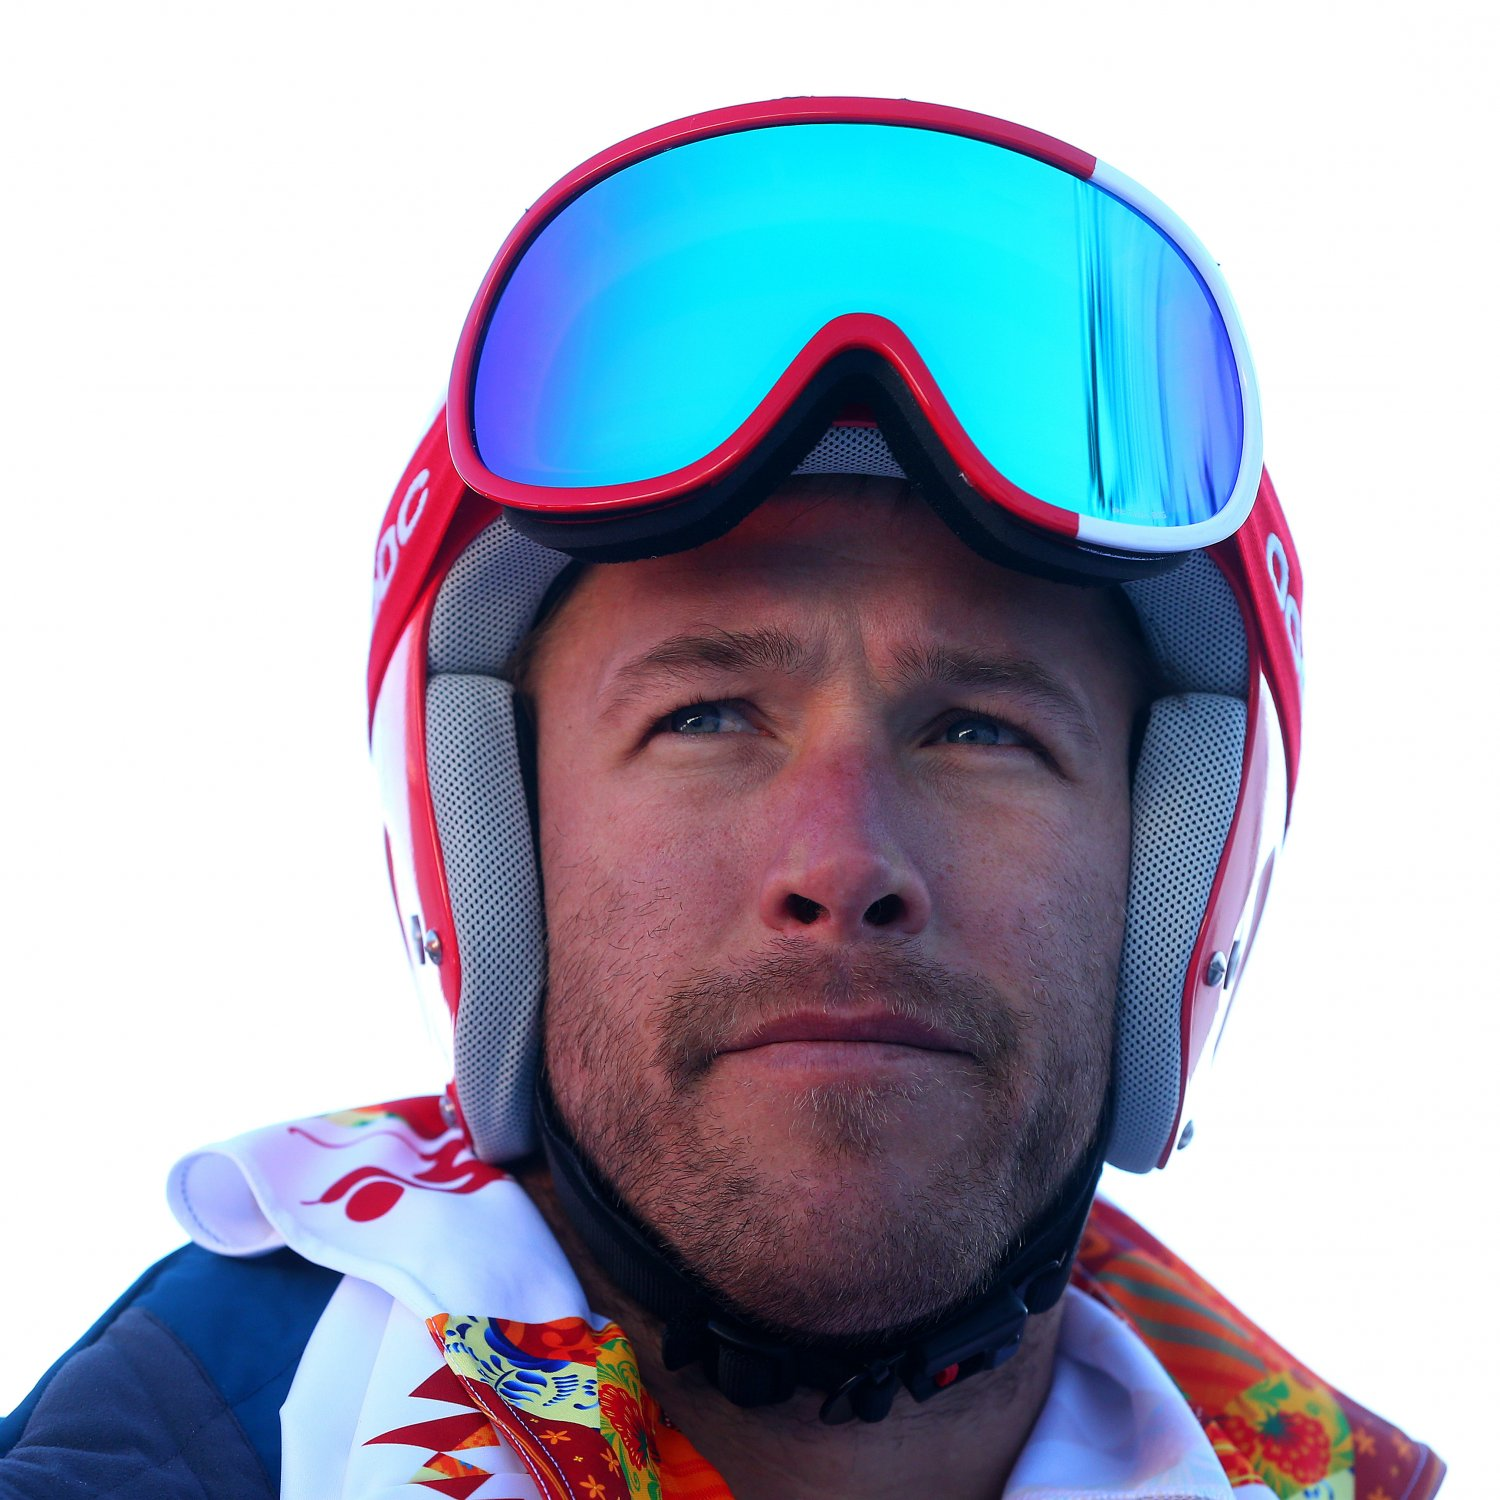 Bode Miller: Bode Miller Wins Bronze Medal In Men's Super G Final At